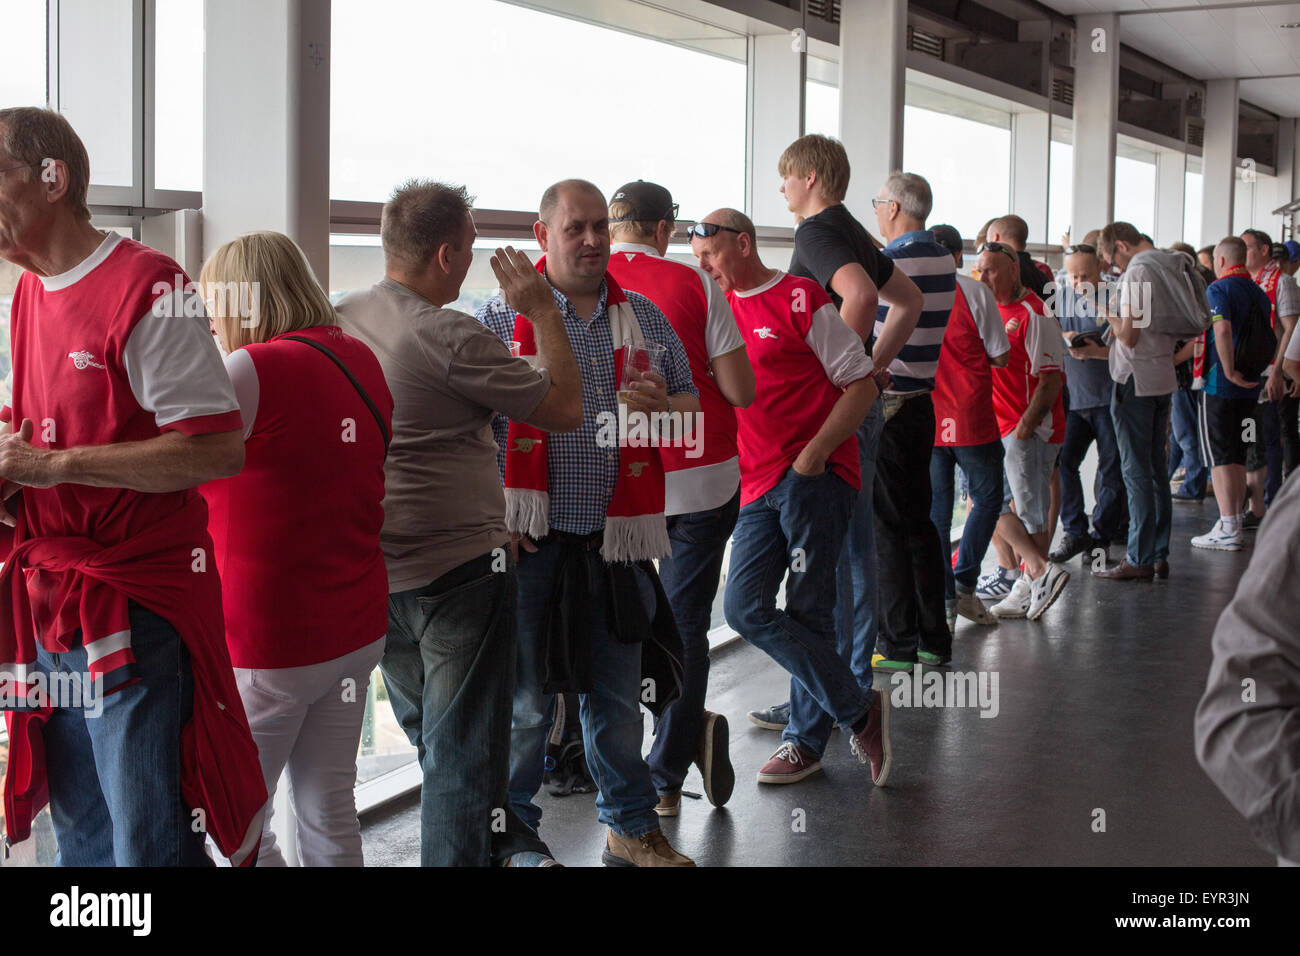 Football supporters drinking and eating at Wembley stadium before a match. - Stock Image